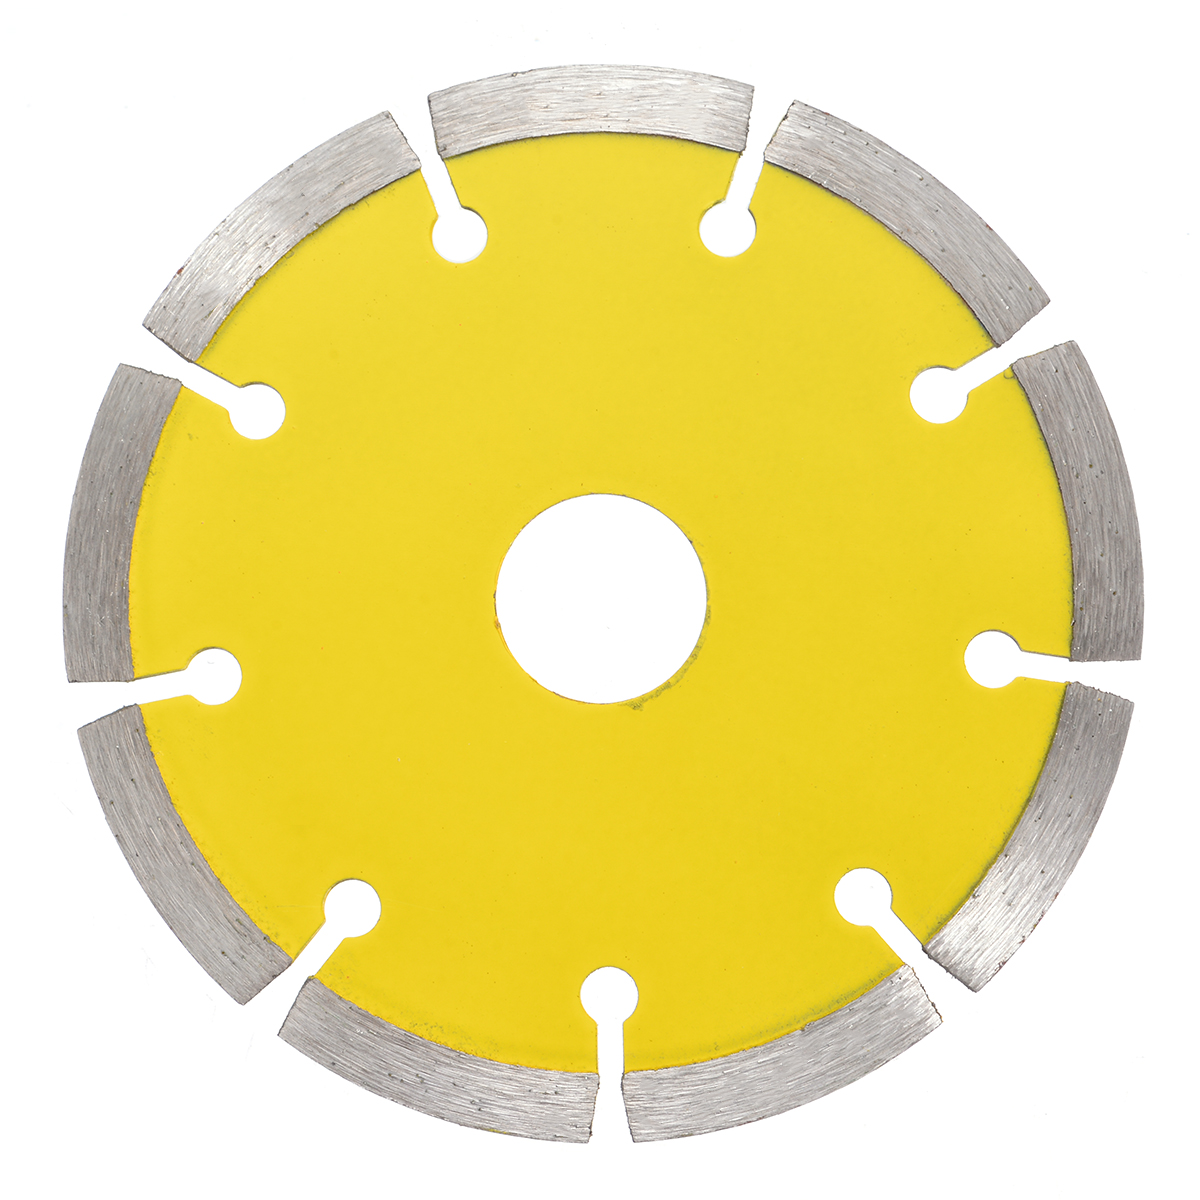 115mm Saw Blades Disc Marble Dry Cutting Blade Disc Diamond Grinding Cut Off Wheel Ceramic Stone Saw Power Tool Accessories